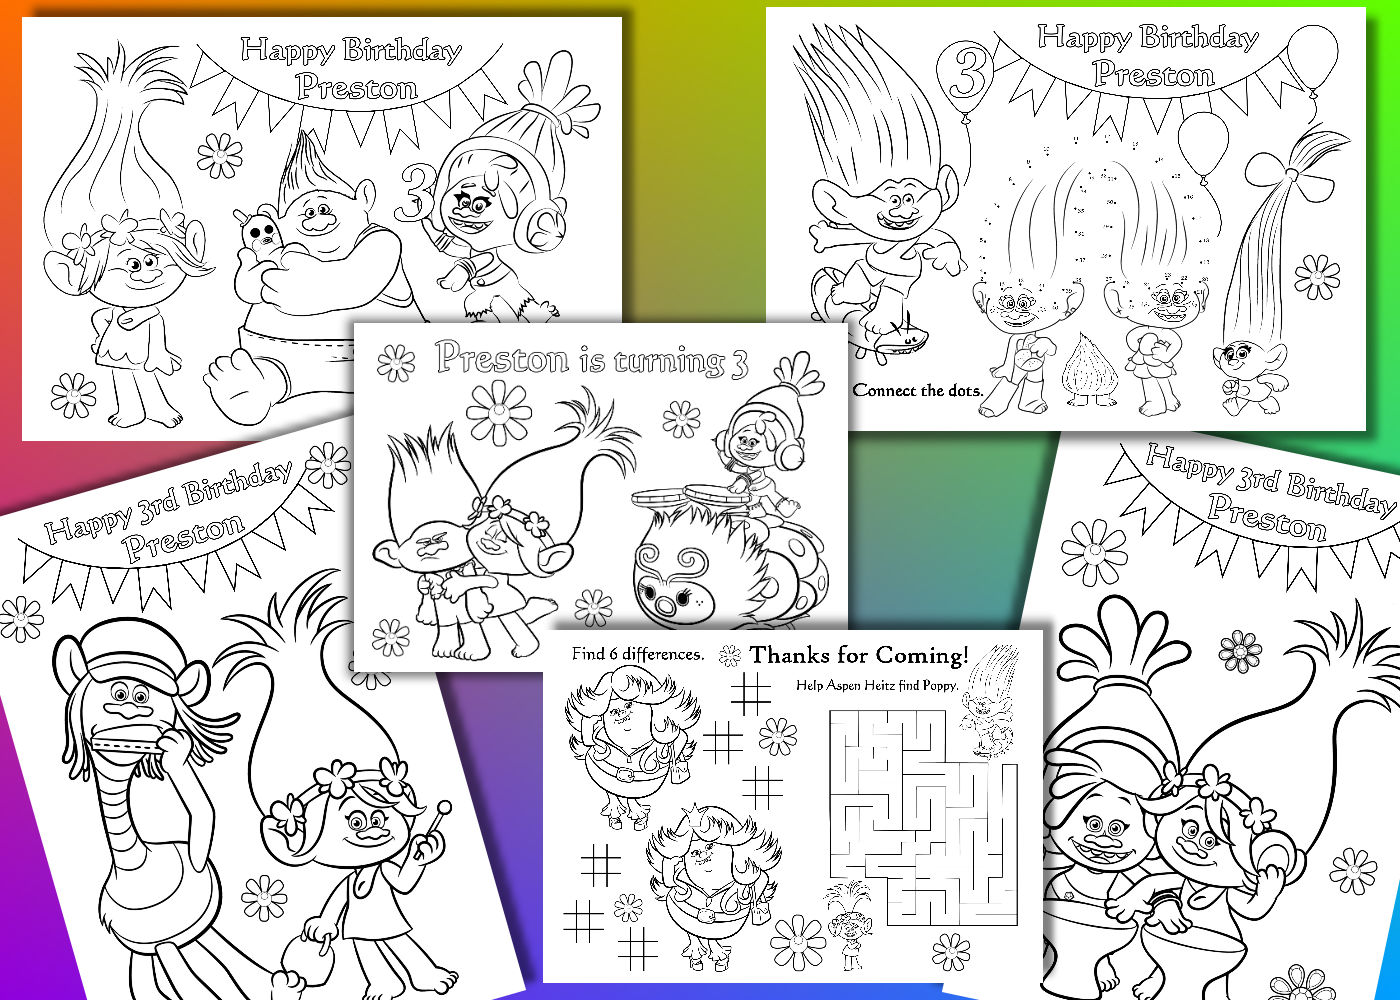 Troll da colorare pagine trolls birthday party favor file - Spiaggia stampabile da colorare pagine da colorare ...